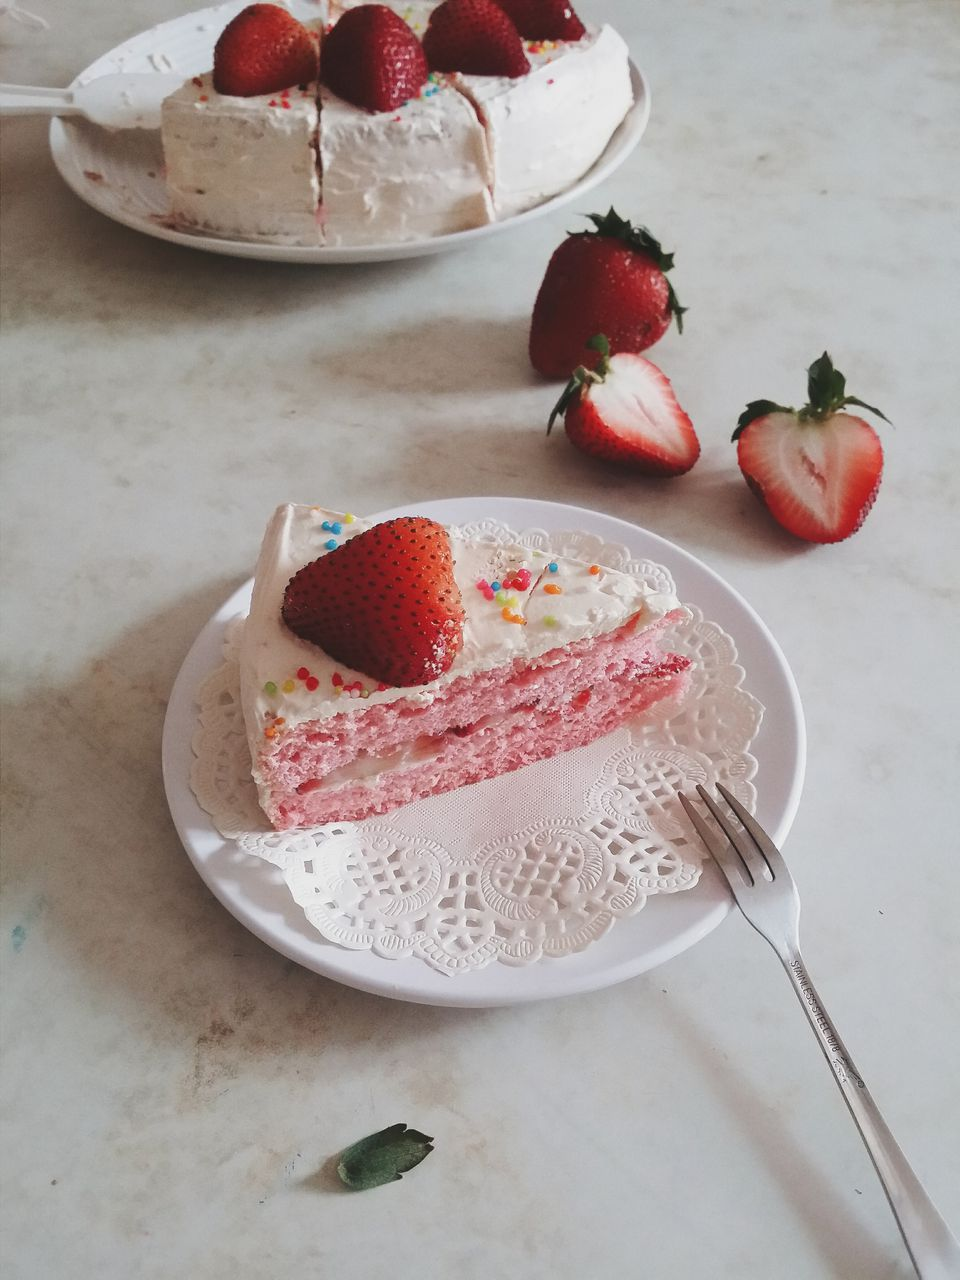 Close-Up Of Strawberry On Cake